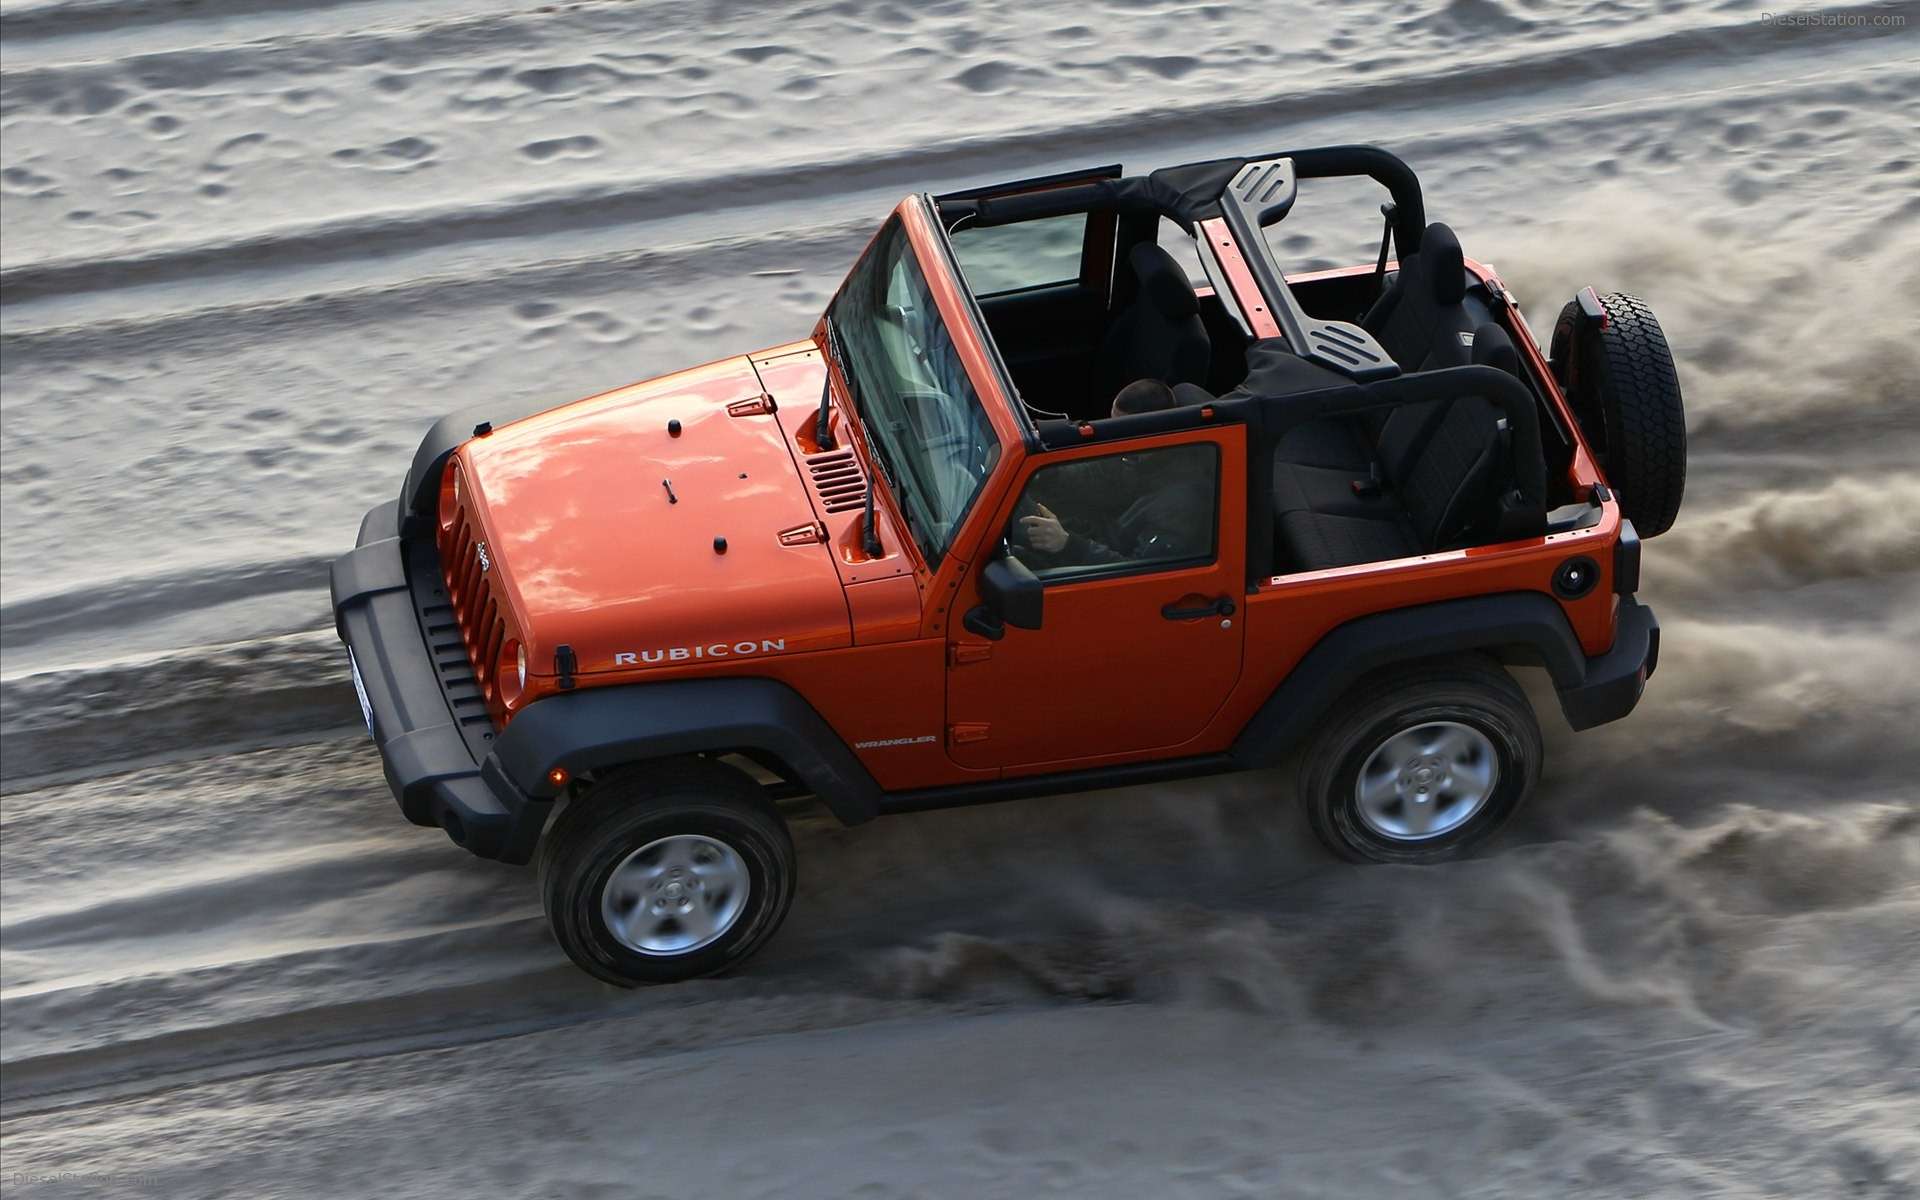 Jeep Wrangler 2012 - Car Wallpaper at Dieselstation